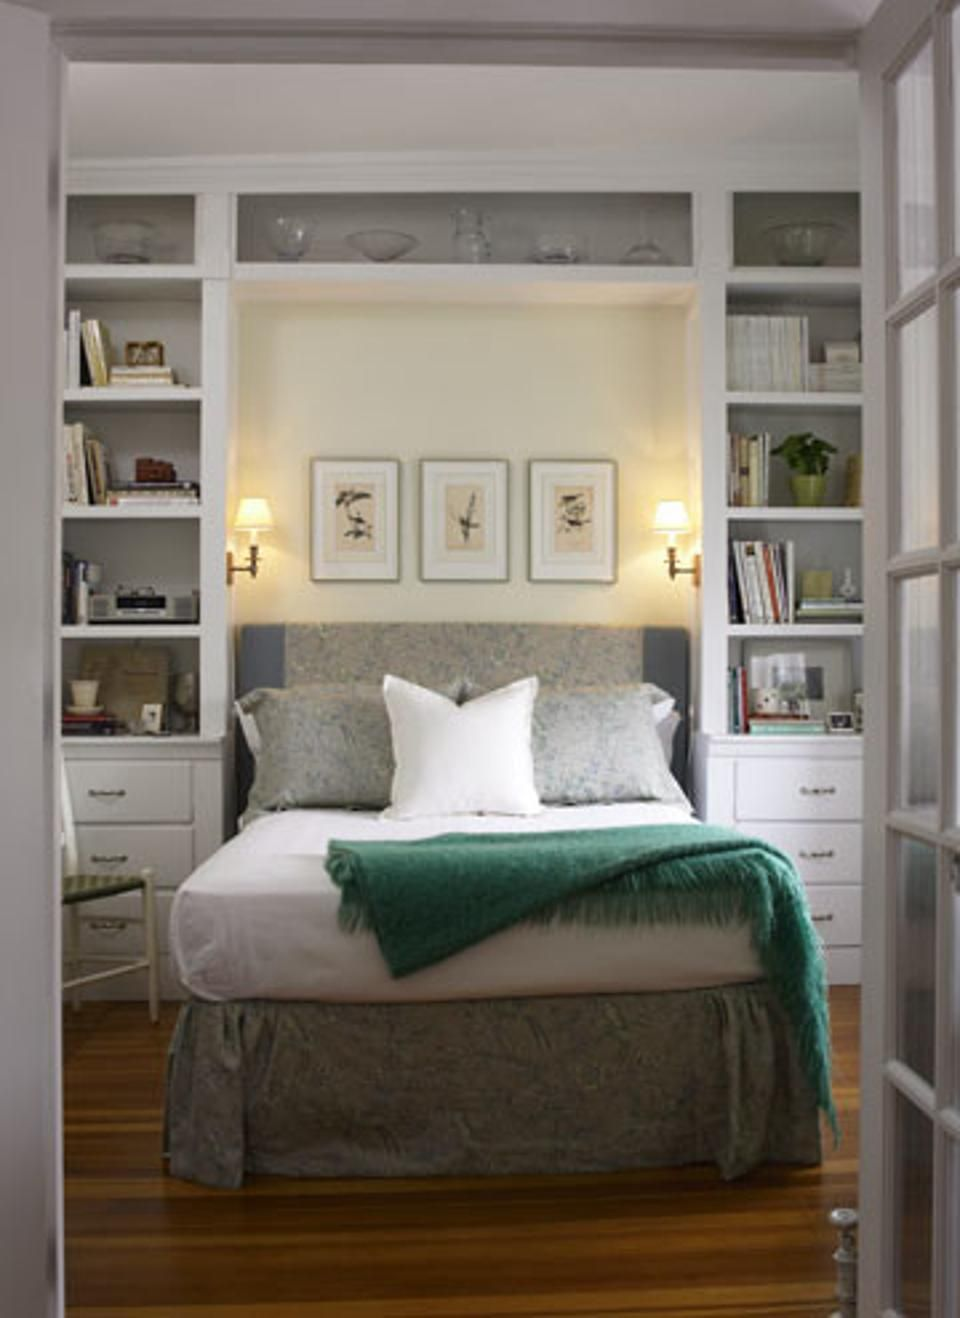 10 Tips To Make A Small Bedroom Look Great Traditional Bedroom